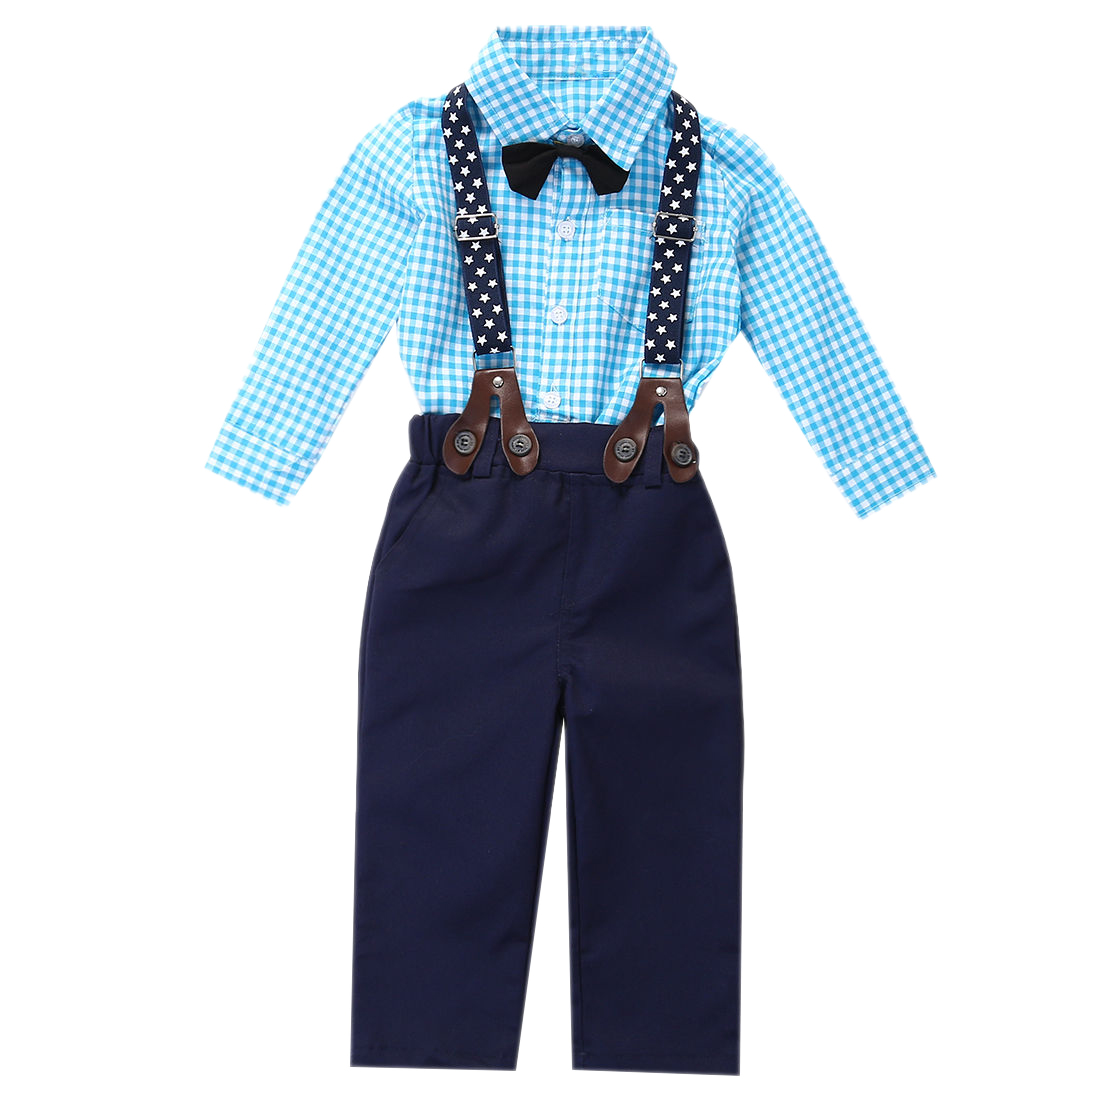 2pcs Kids Baby Boys Plaid ShirtSuspender Trouser Overalls Party Clothes Outfits